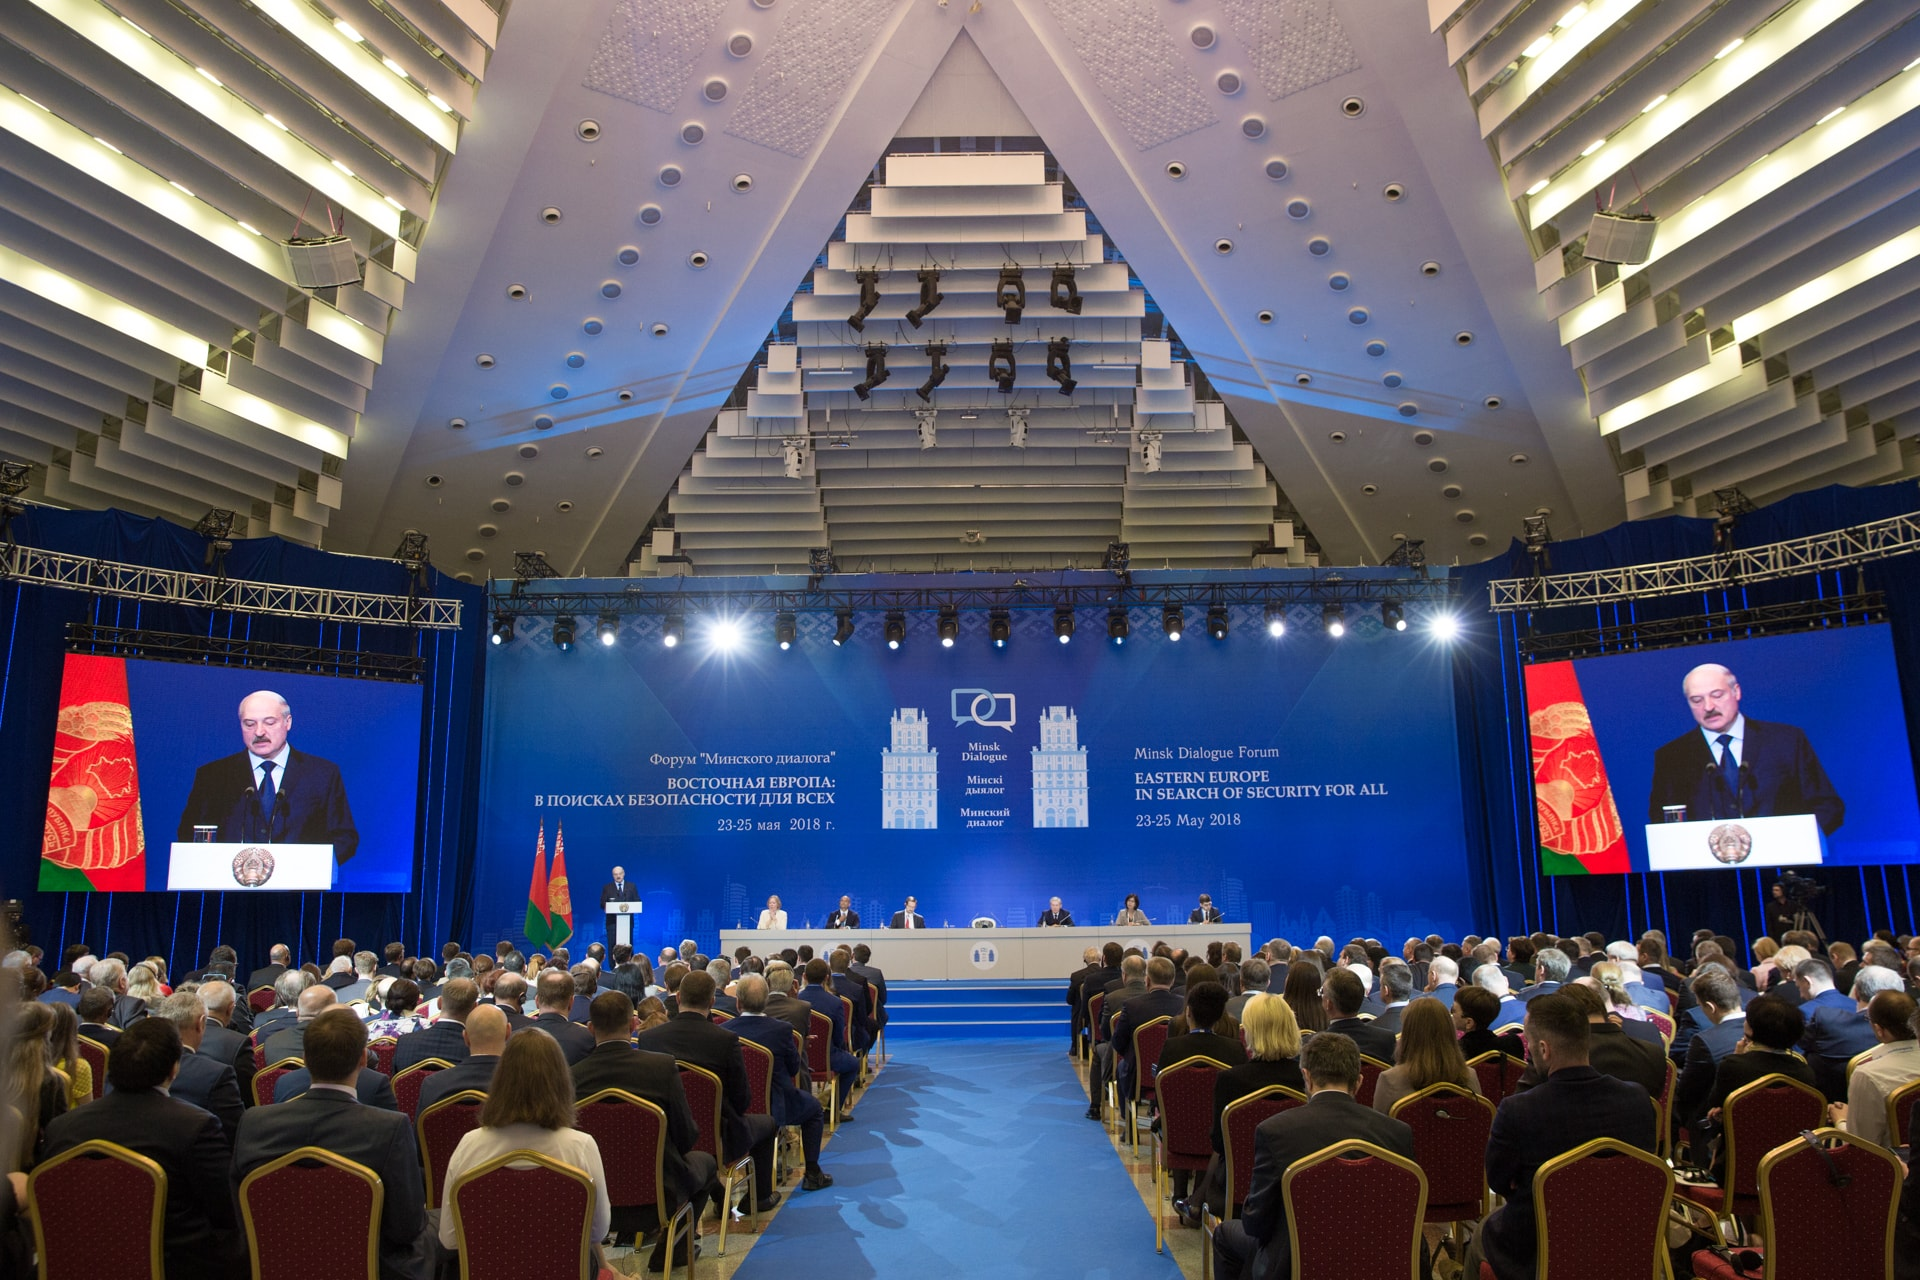 Minsk Dialogue Forum - Day 2 (24.05.2018)